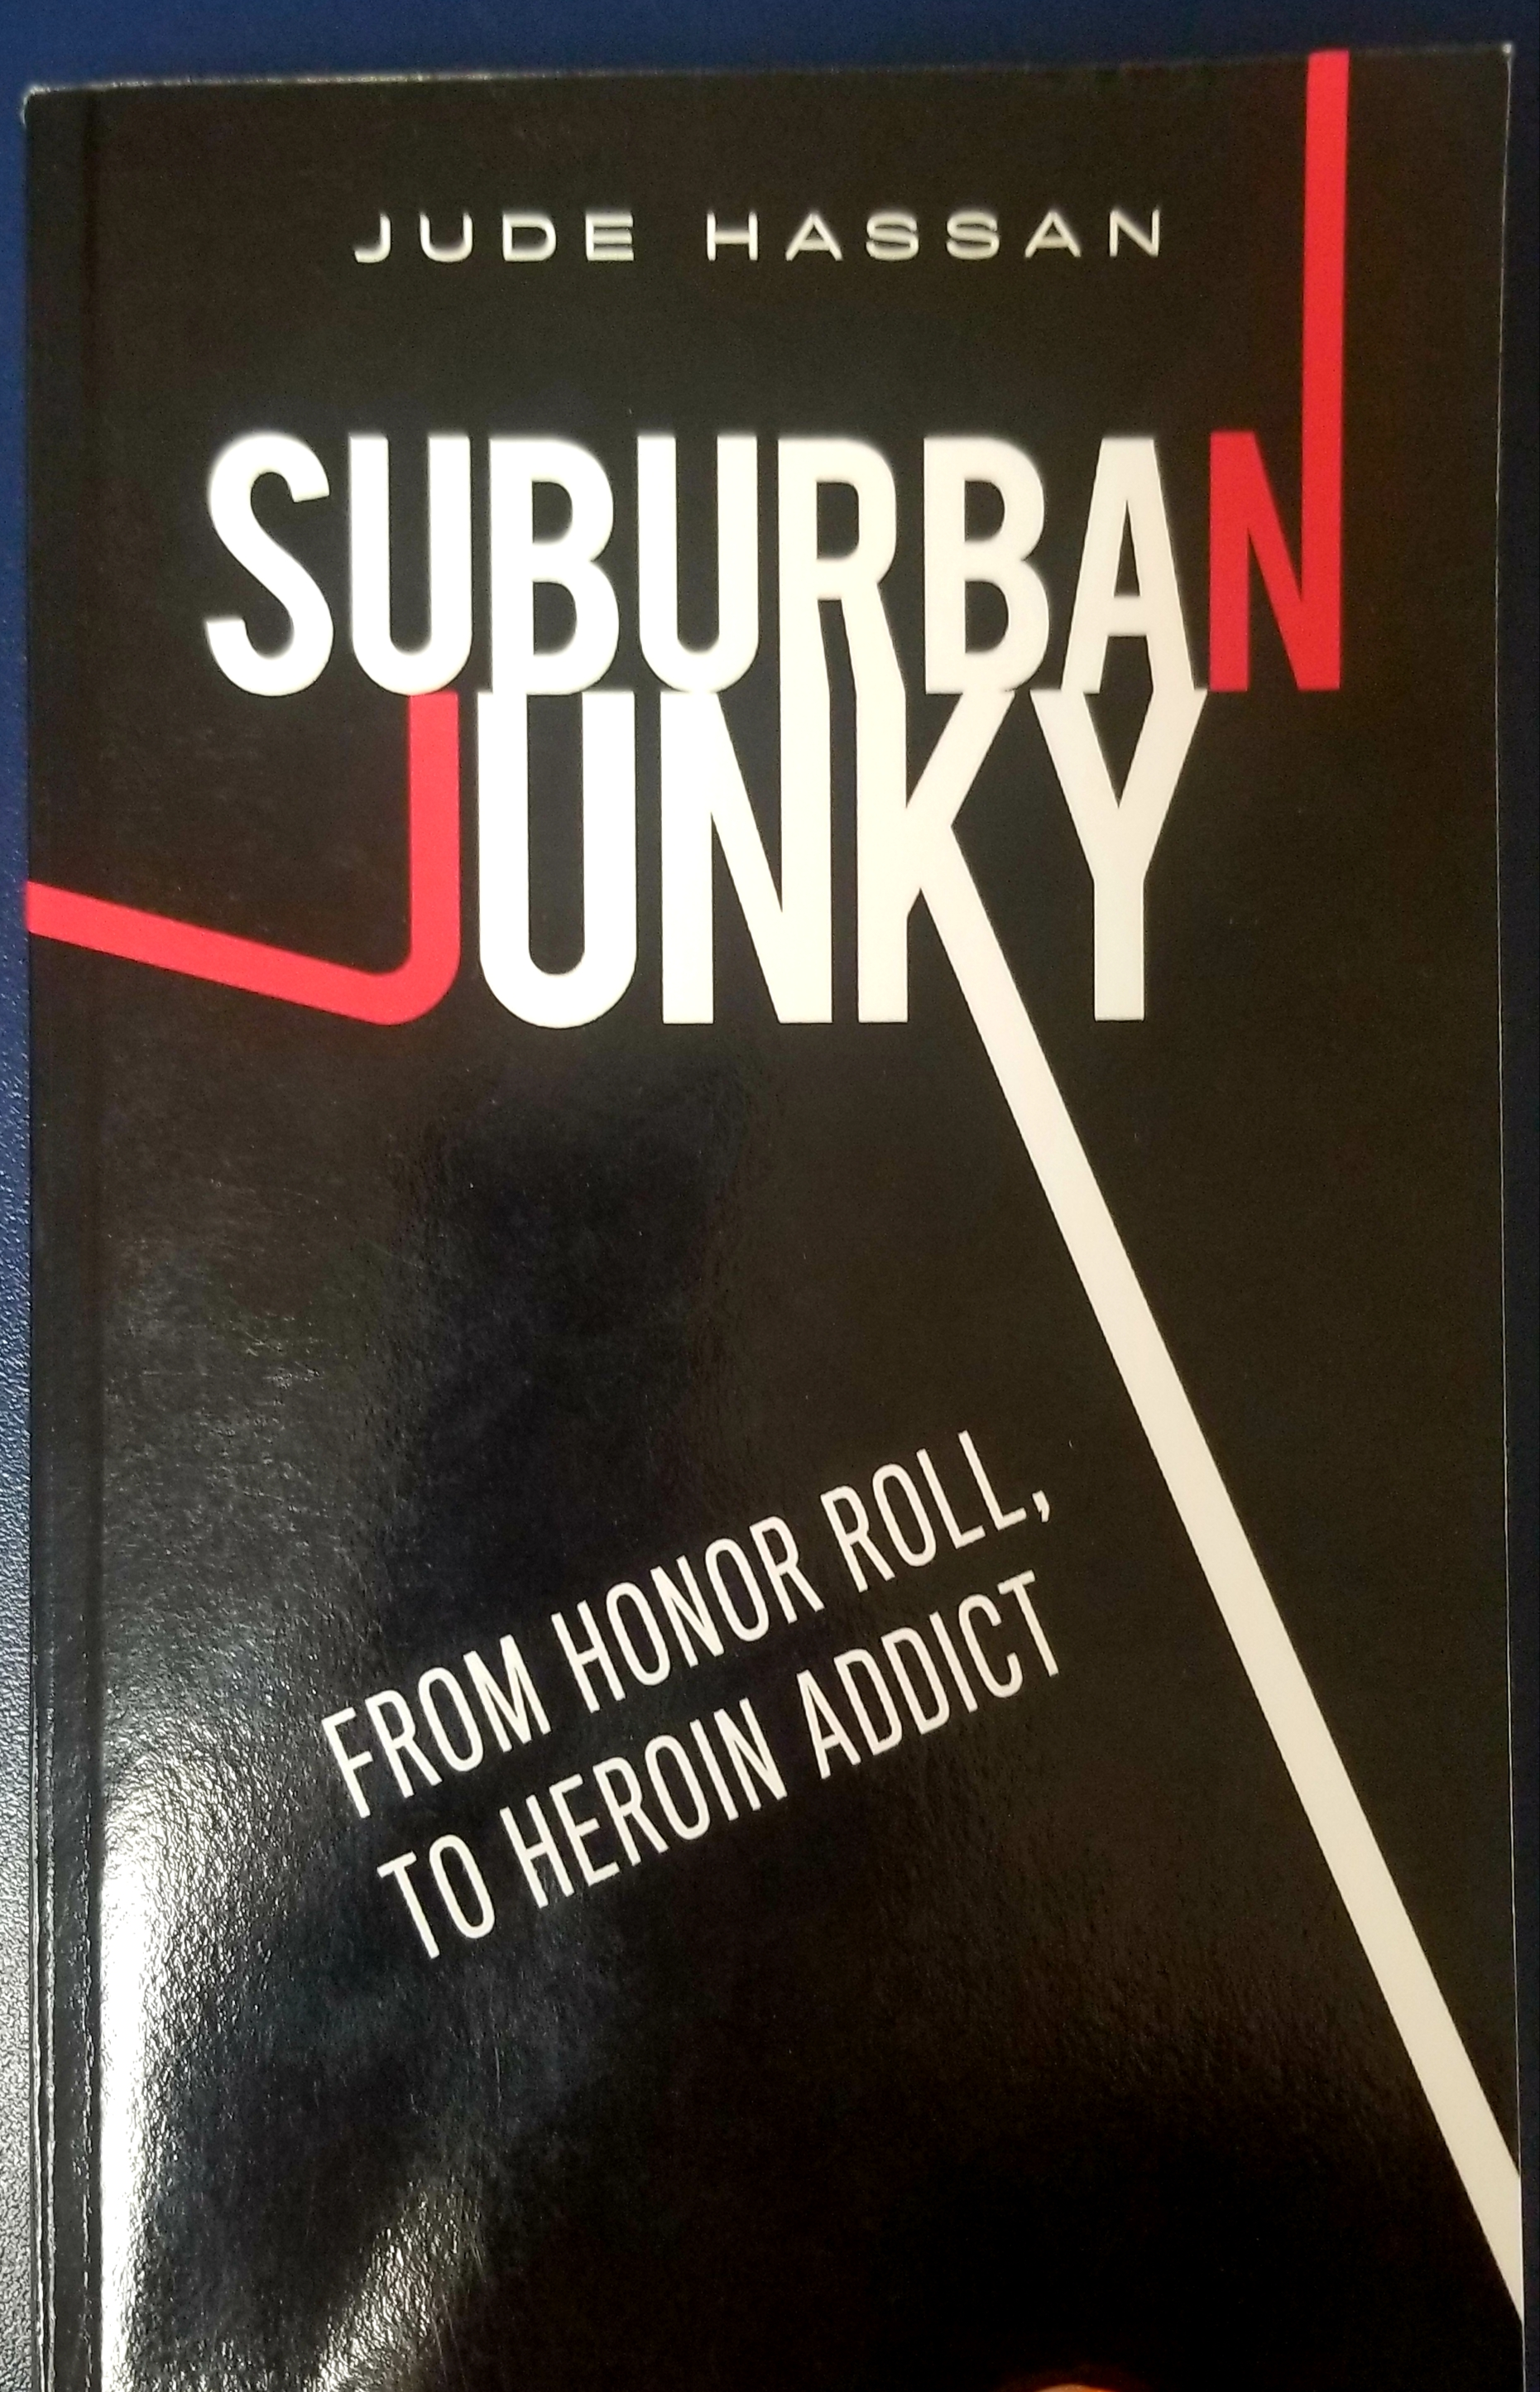 Jude Hassan Suburban Junky Book for Red Ribbon Week - Washington County Health Coalition